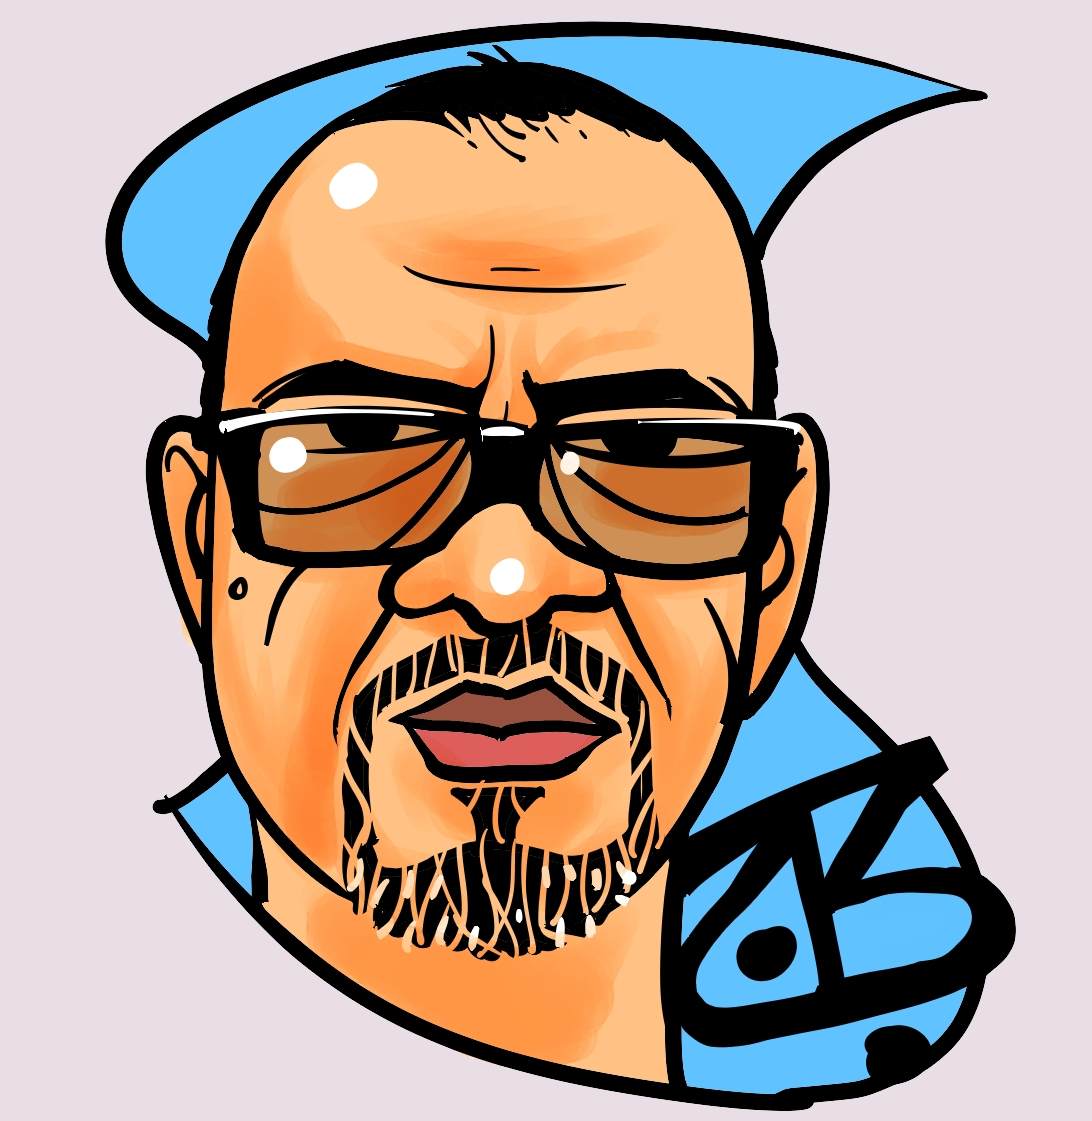 emad hajjaj icon portrait glasses sig 15-03-19